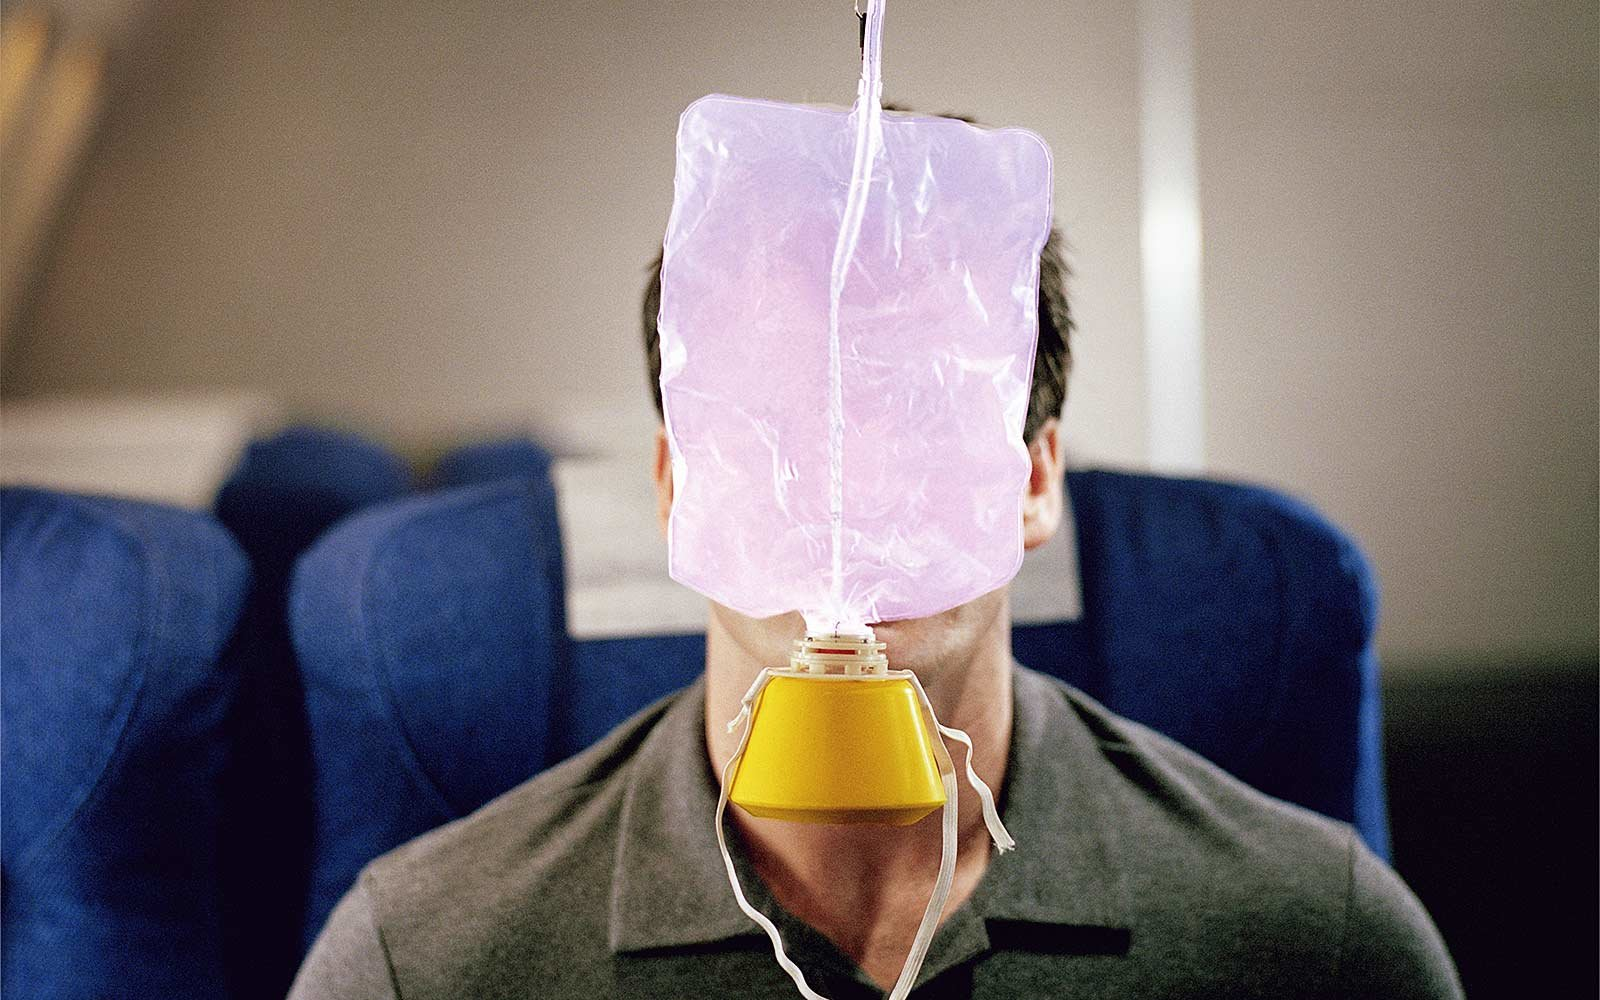 What happens when you put on your oxygen mask